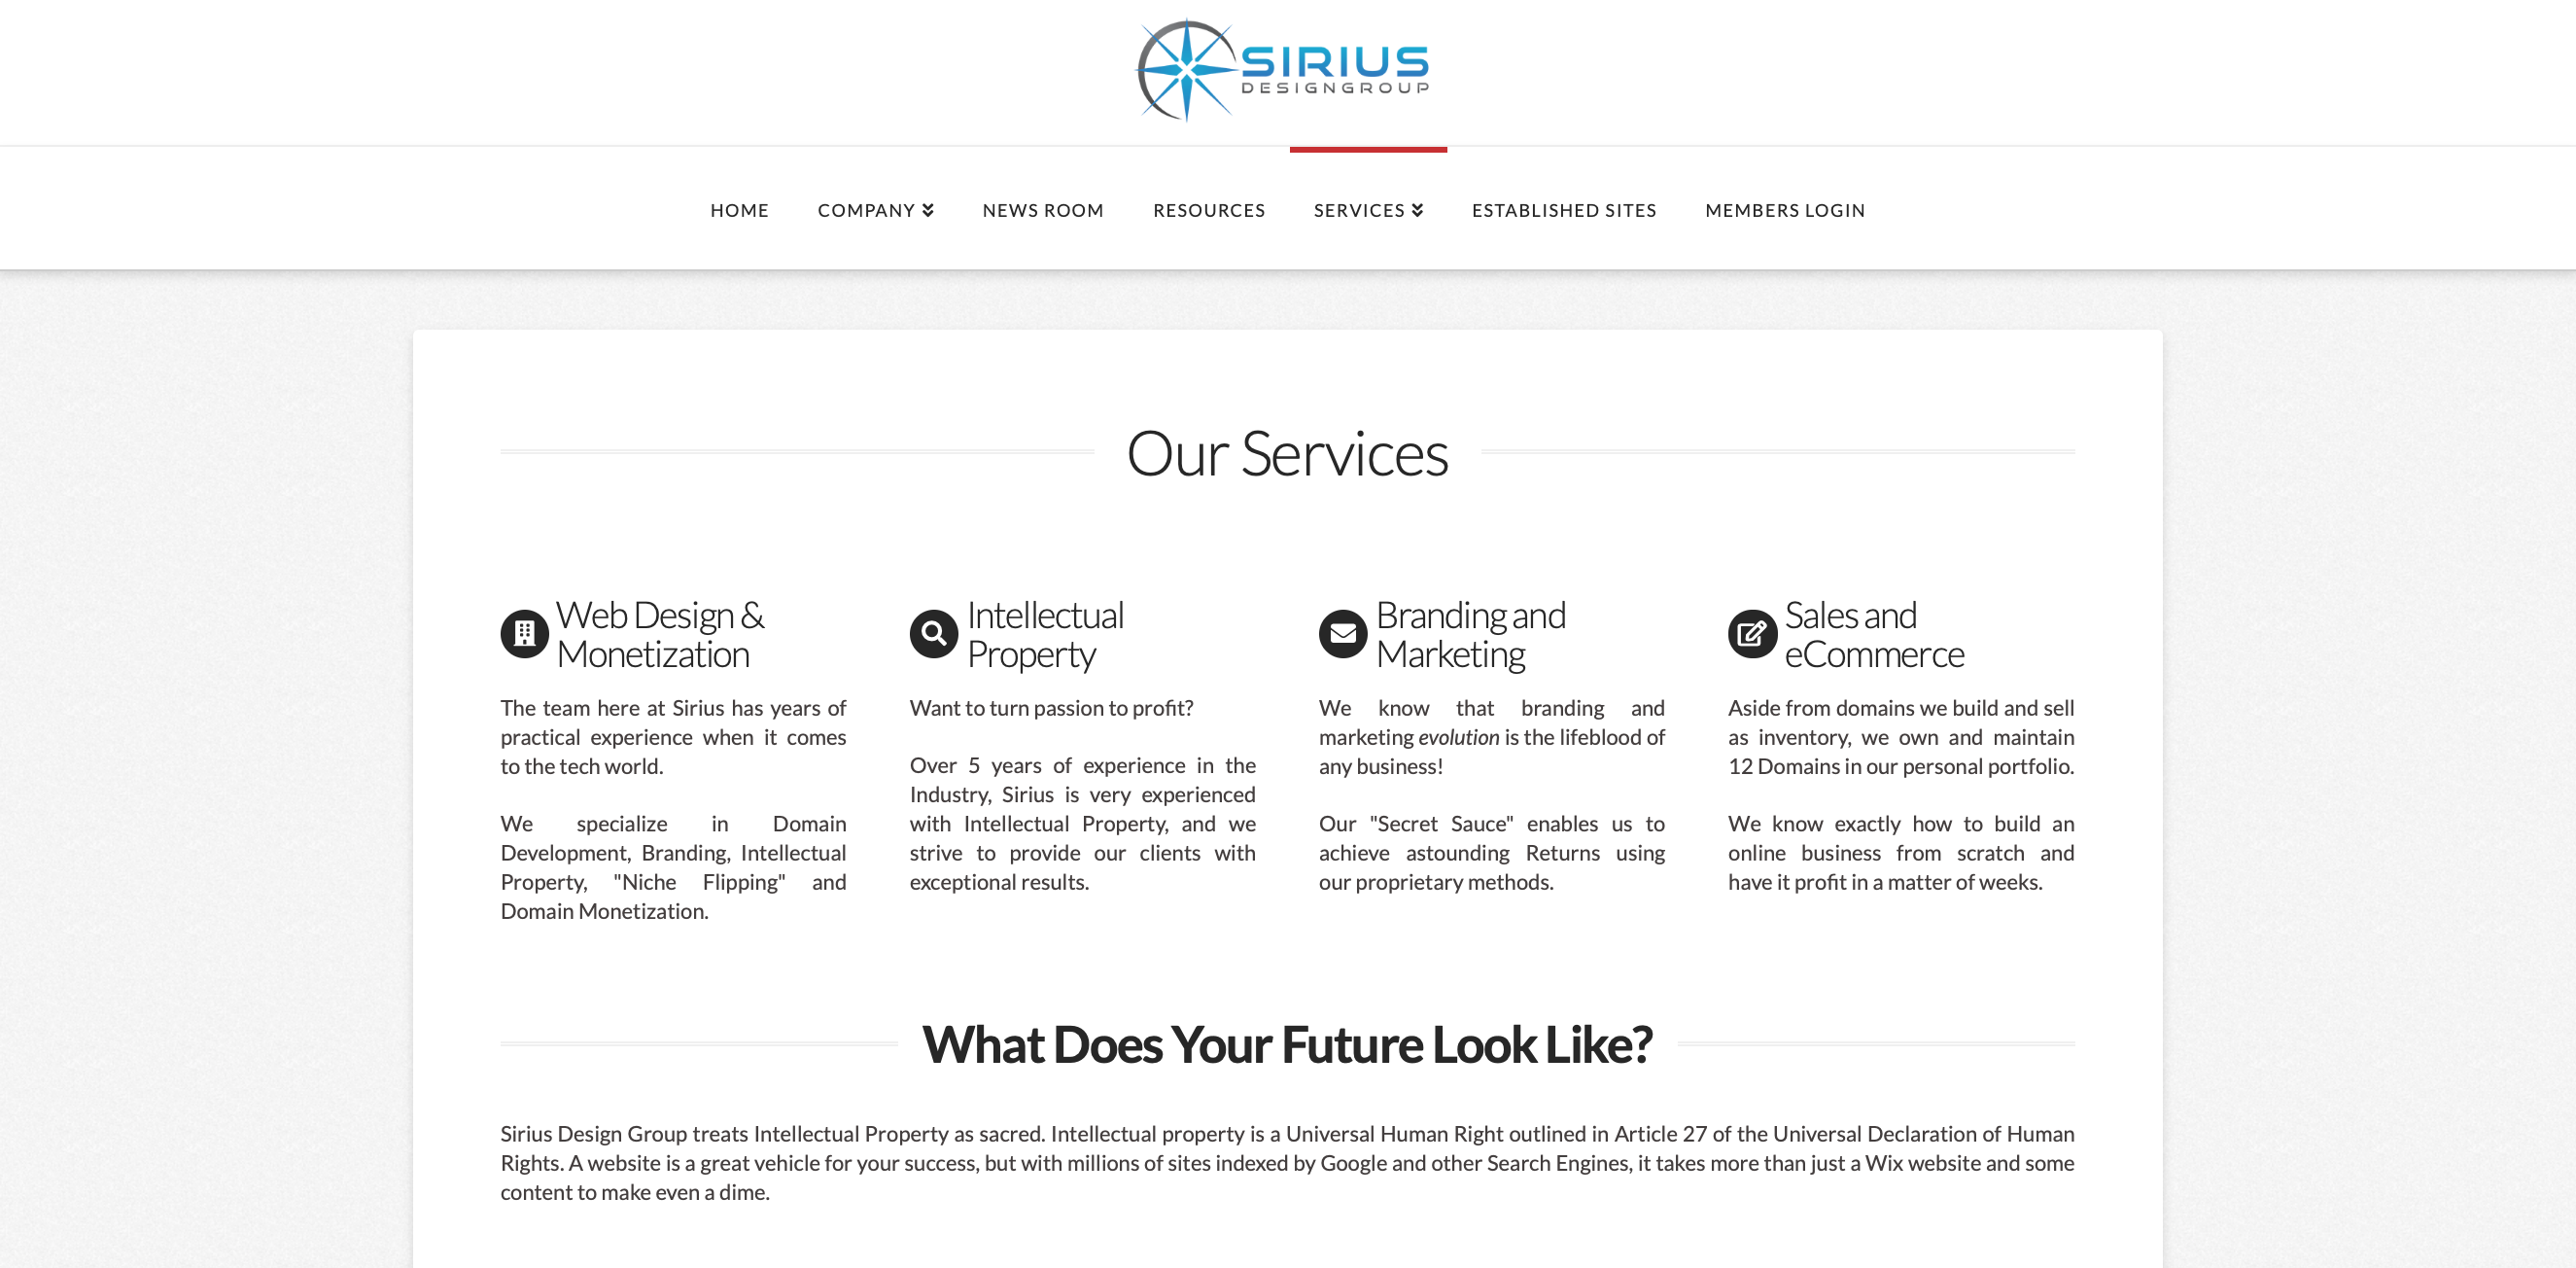 Sirius Design Group